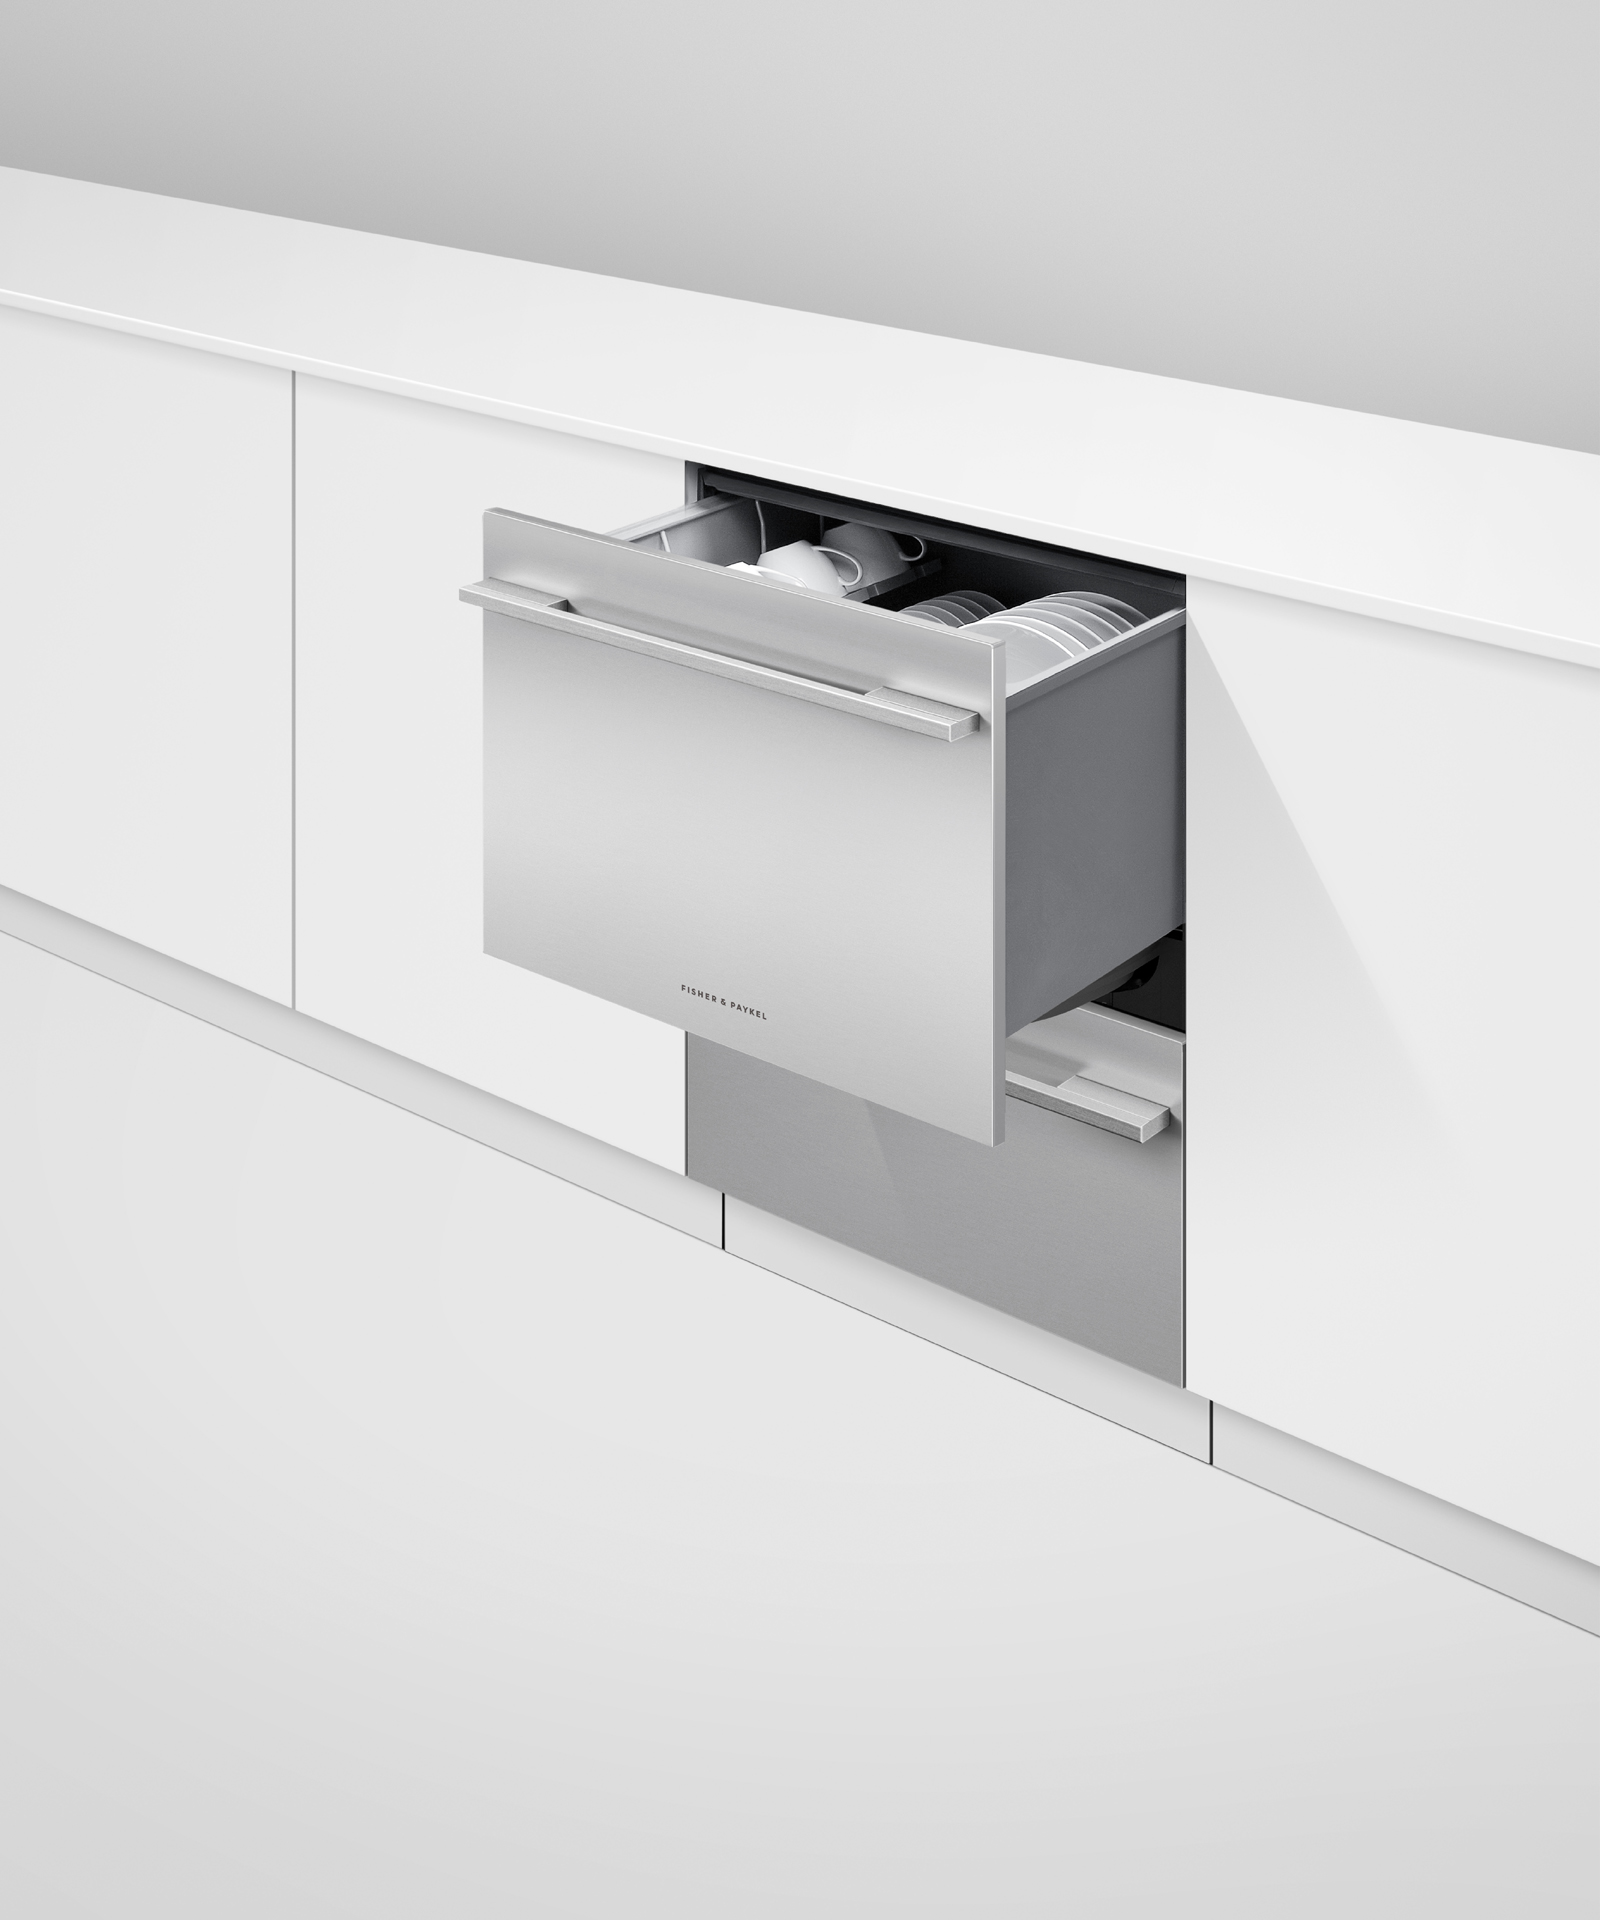 Model: DD24DHTI9 N | Fisher and Paykel Integrated Double DishDrawer™ Dishwasher, Tall, Sanitize